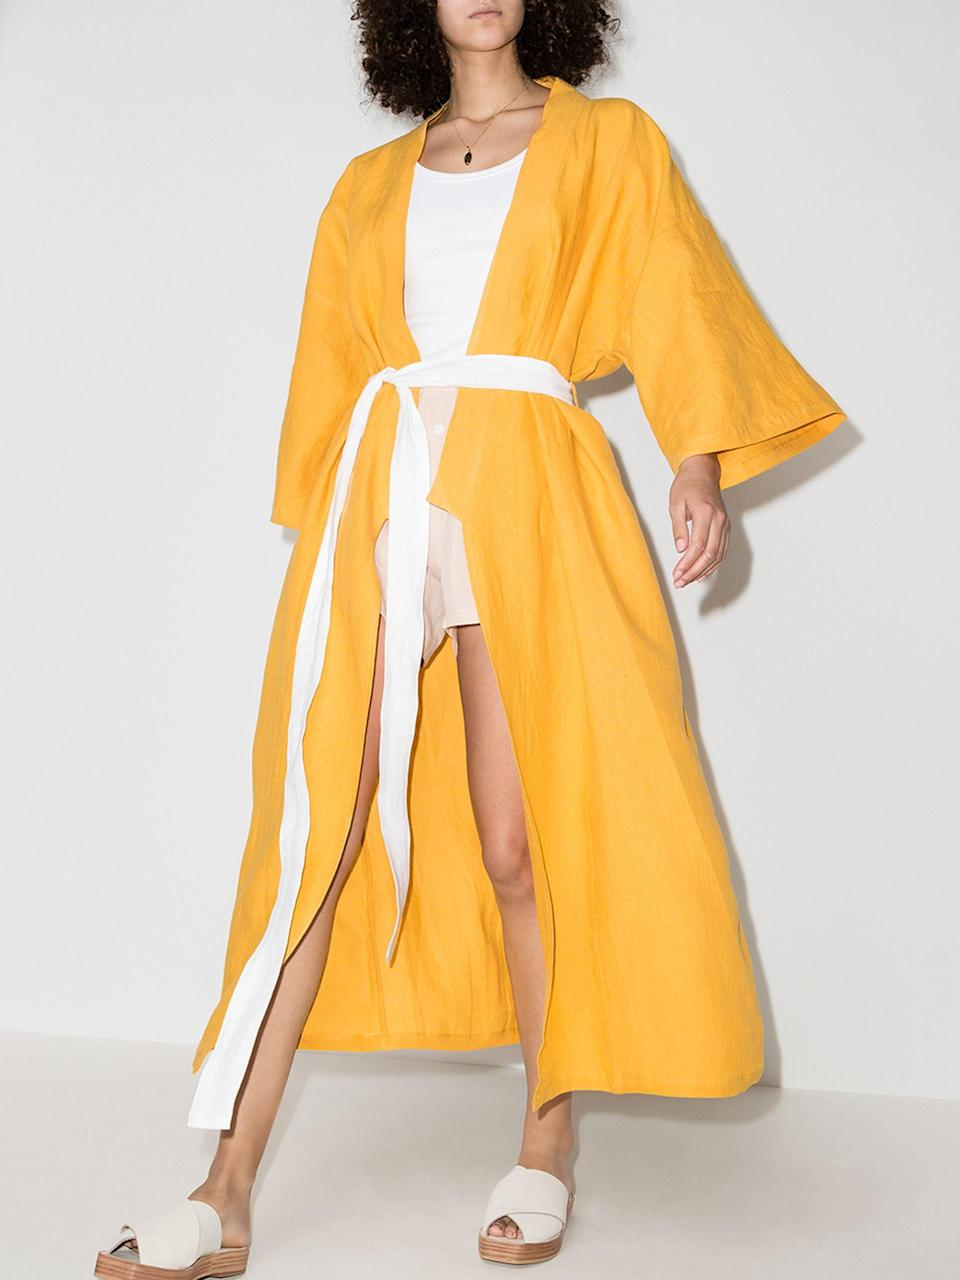 """<br><br><strong>Deiji Studios</strong> The 02 Robe, $, available at <a href=""""https://go.skimresources.com/?id=30283X879131&url=https%3A%2F%2Fwww.brownsfashion.com%2Fshopping%2Fdeiji-studios-the-02-kimono-robe-15781973"""" rel=""""nofollow noopener"""" target=""""_blank"""" data-ylk=""""slk:Browns"""" class=""""link rapid-noclick-resp"""">Browns</a>"""